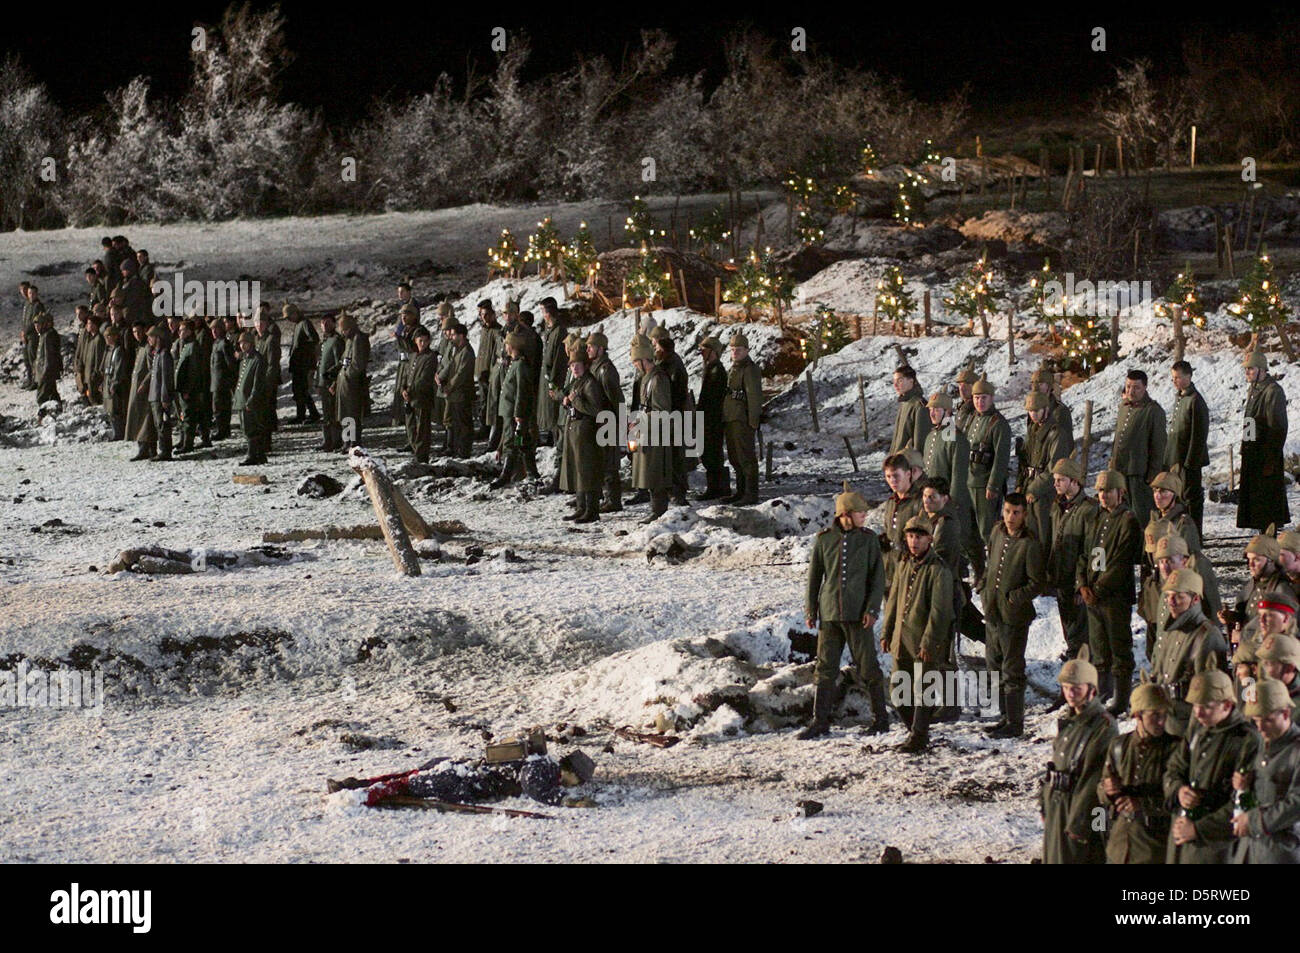 MOVIE SCENE MERRY CHRISTMAS; JOYEUX NOEL (2005 Stock Photo: 55229285 ...